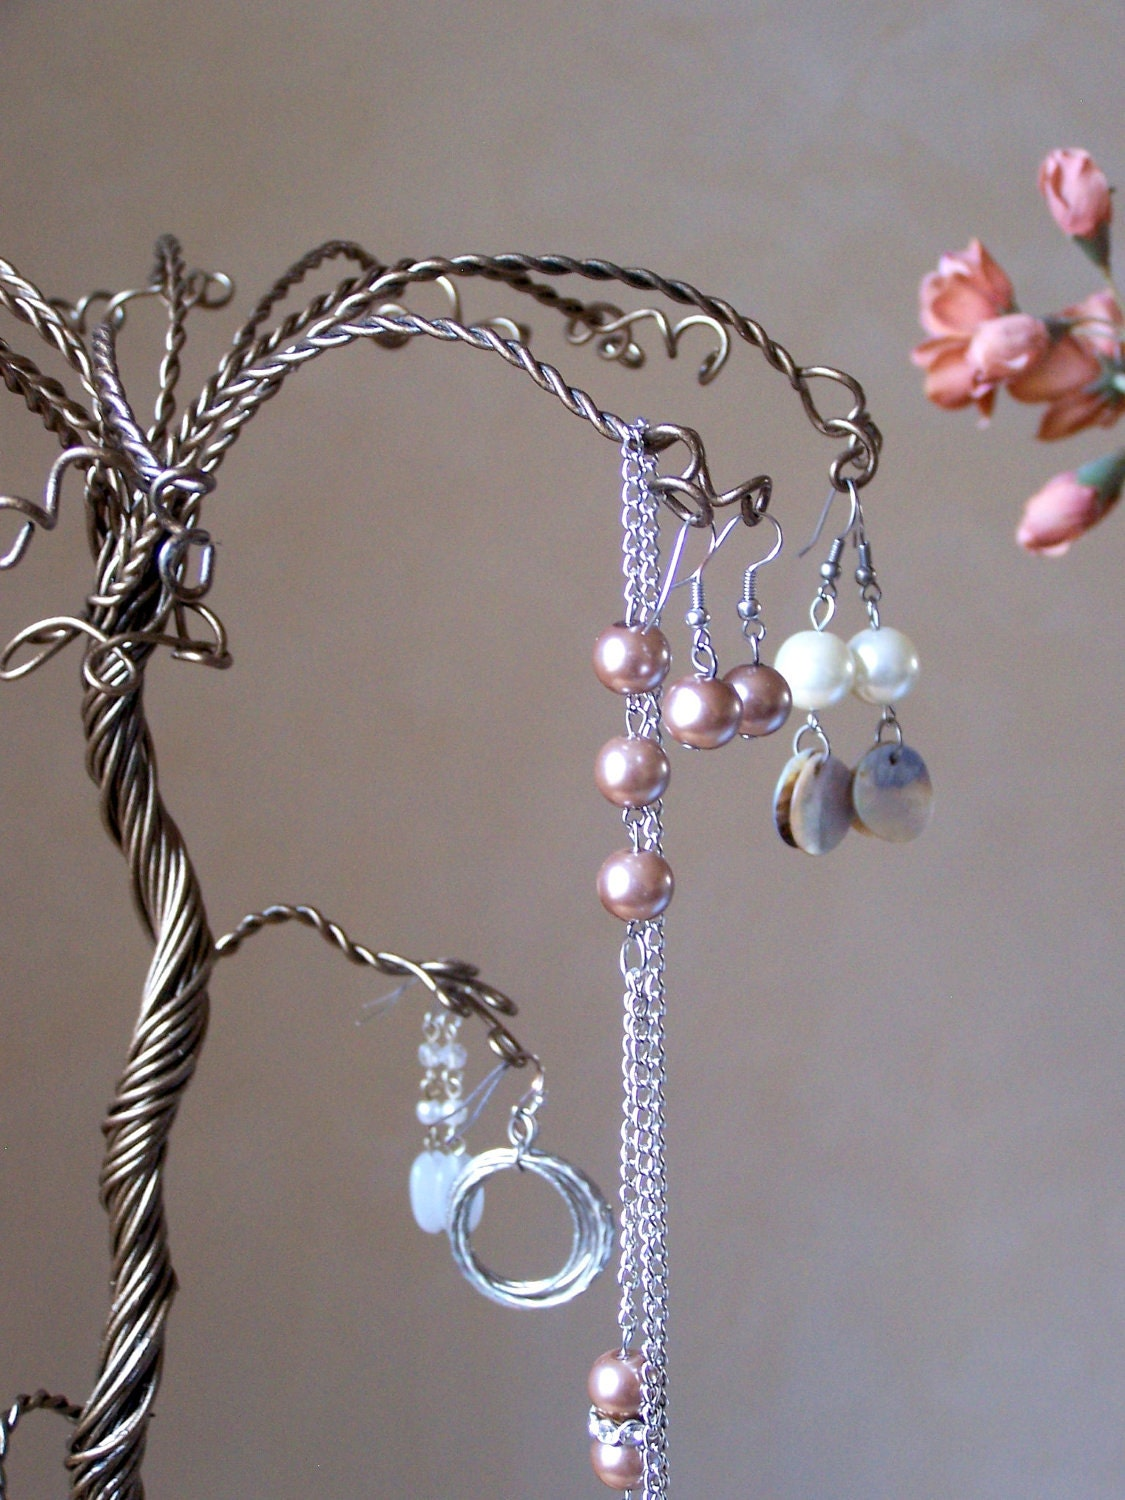 Sale jewelry tree wire stand display earrings and necklace for How to make a wire tree jewelry stand